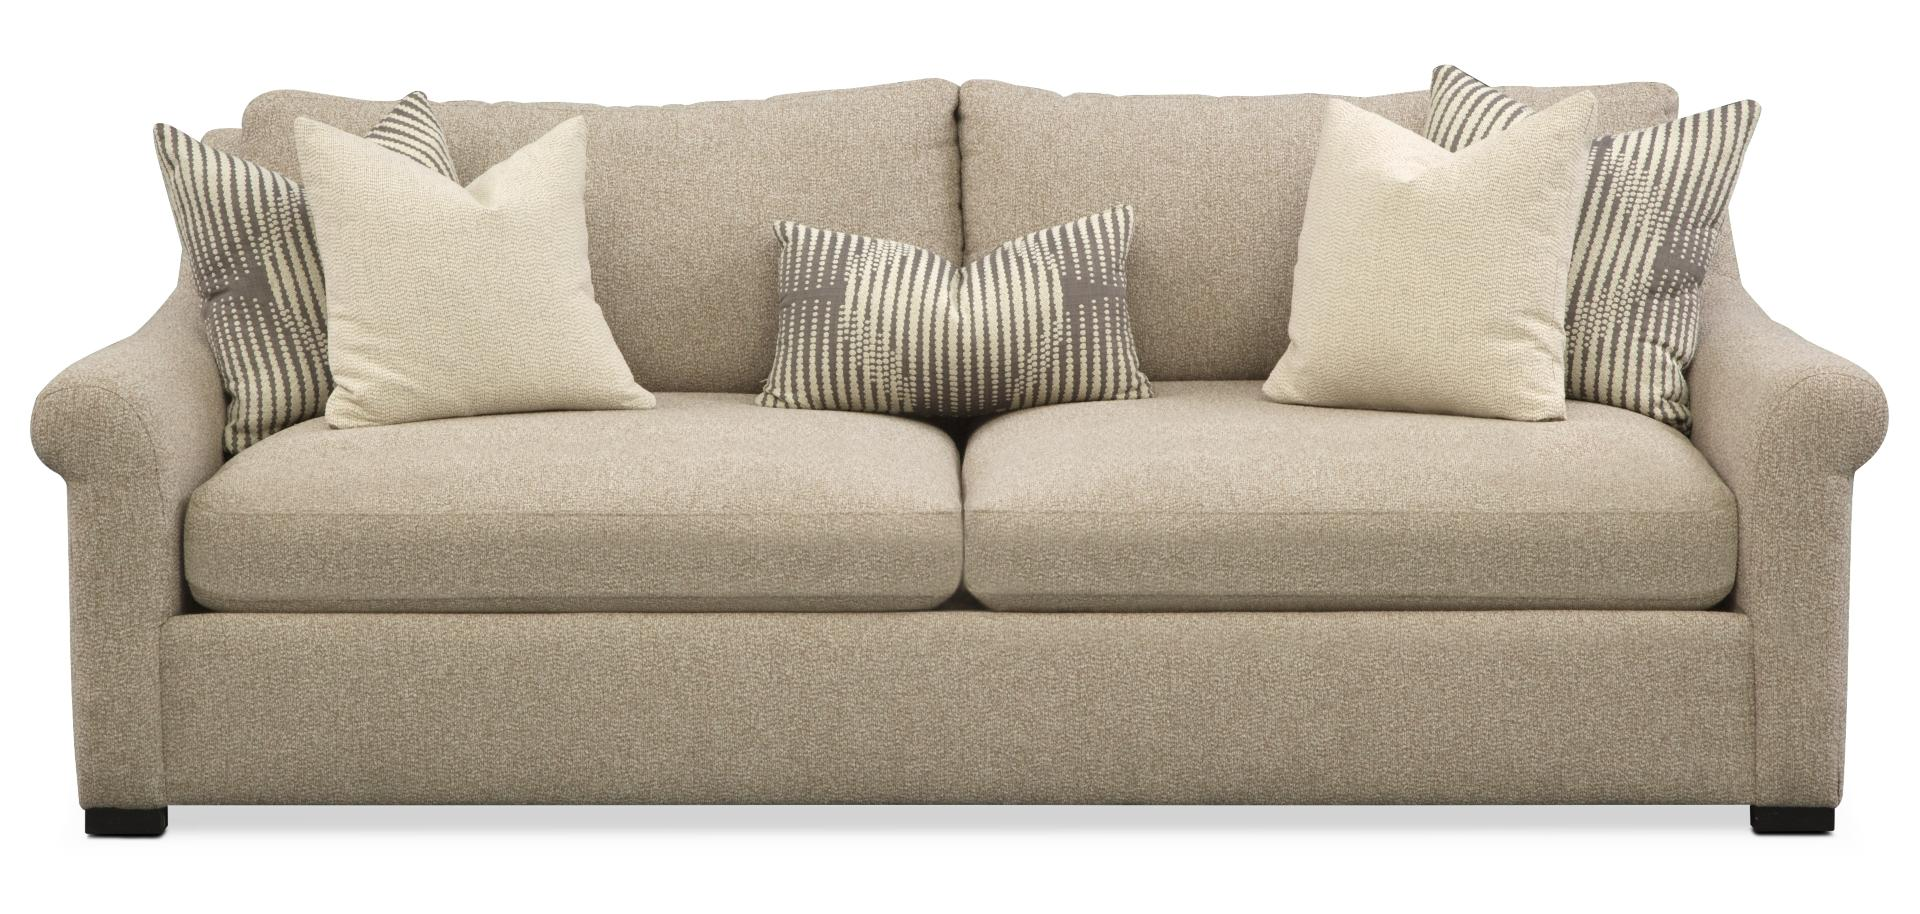 Finest Robertson Cumulus Sofa Beige With Furniture Stores Near Bradenton Fl